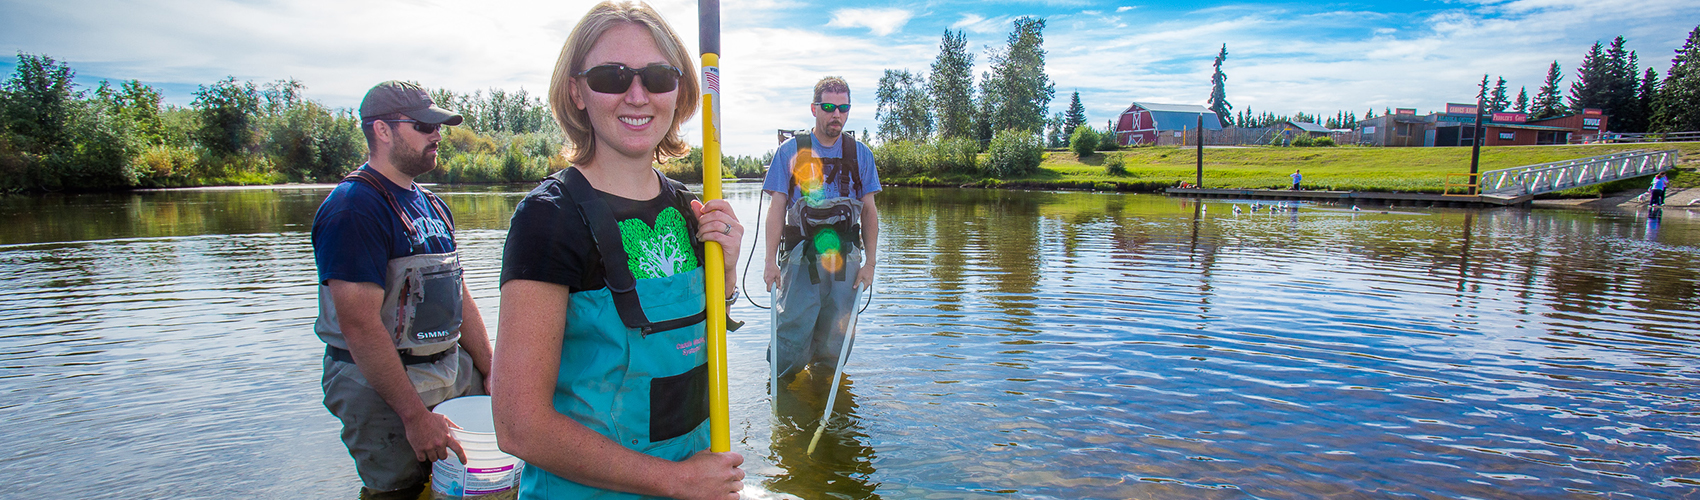 Undergraduate Patty McCall works with Fisheries Professor Trent Sutton, right, and master's candidate Nick Smith collecting live samples from the Chena River for their research on the life dynamics of Arctic brook lampreys.